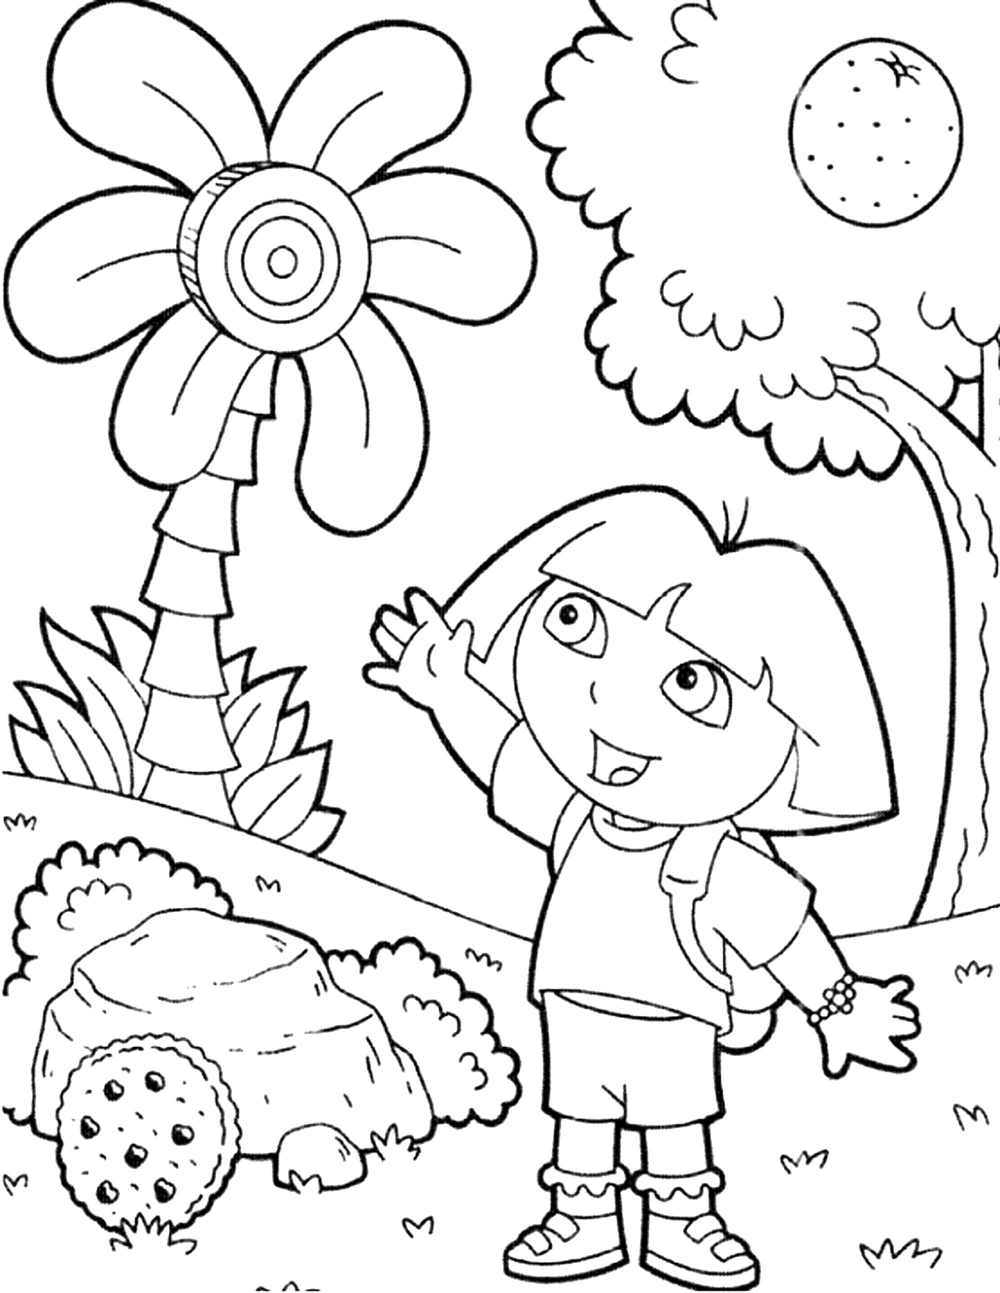 dora color sheets print download dora coloring pages to learn new things sheets dora color 1 2